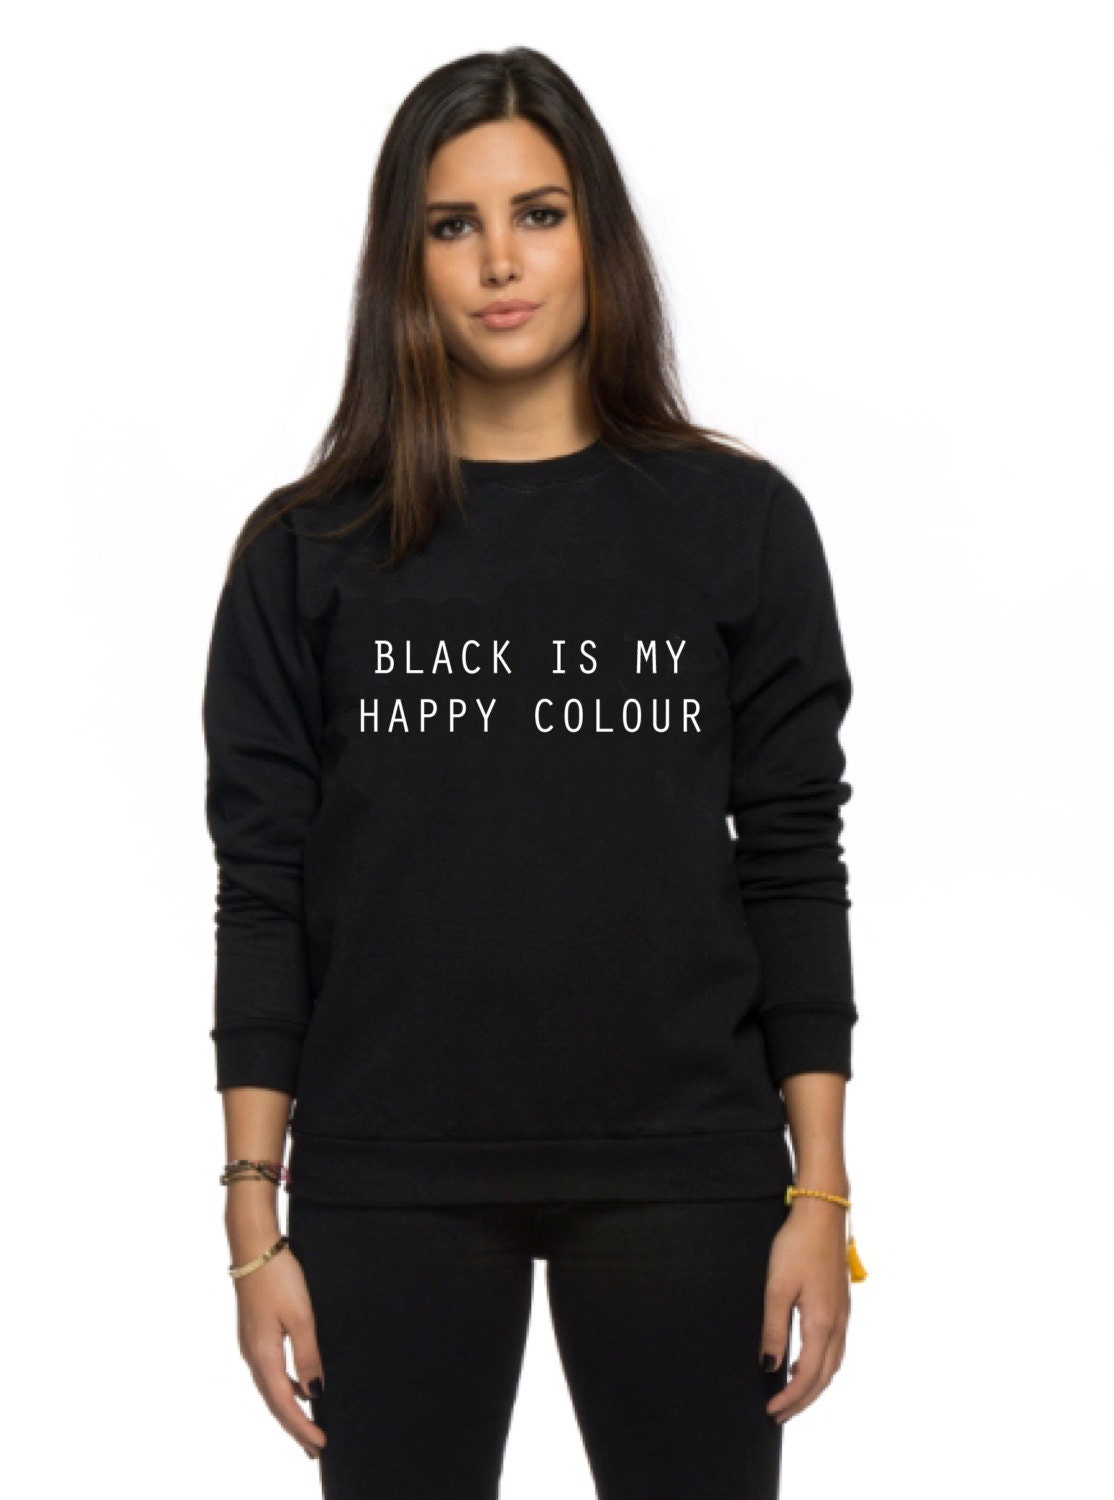 black is my happy colour sweatshirt tumblr blogger instagram. Black Bedroom Furniture Sets. Home Design Ideas